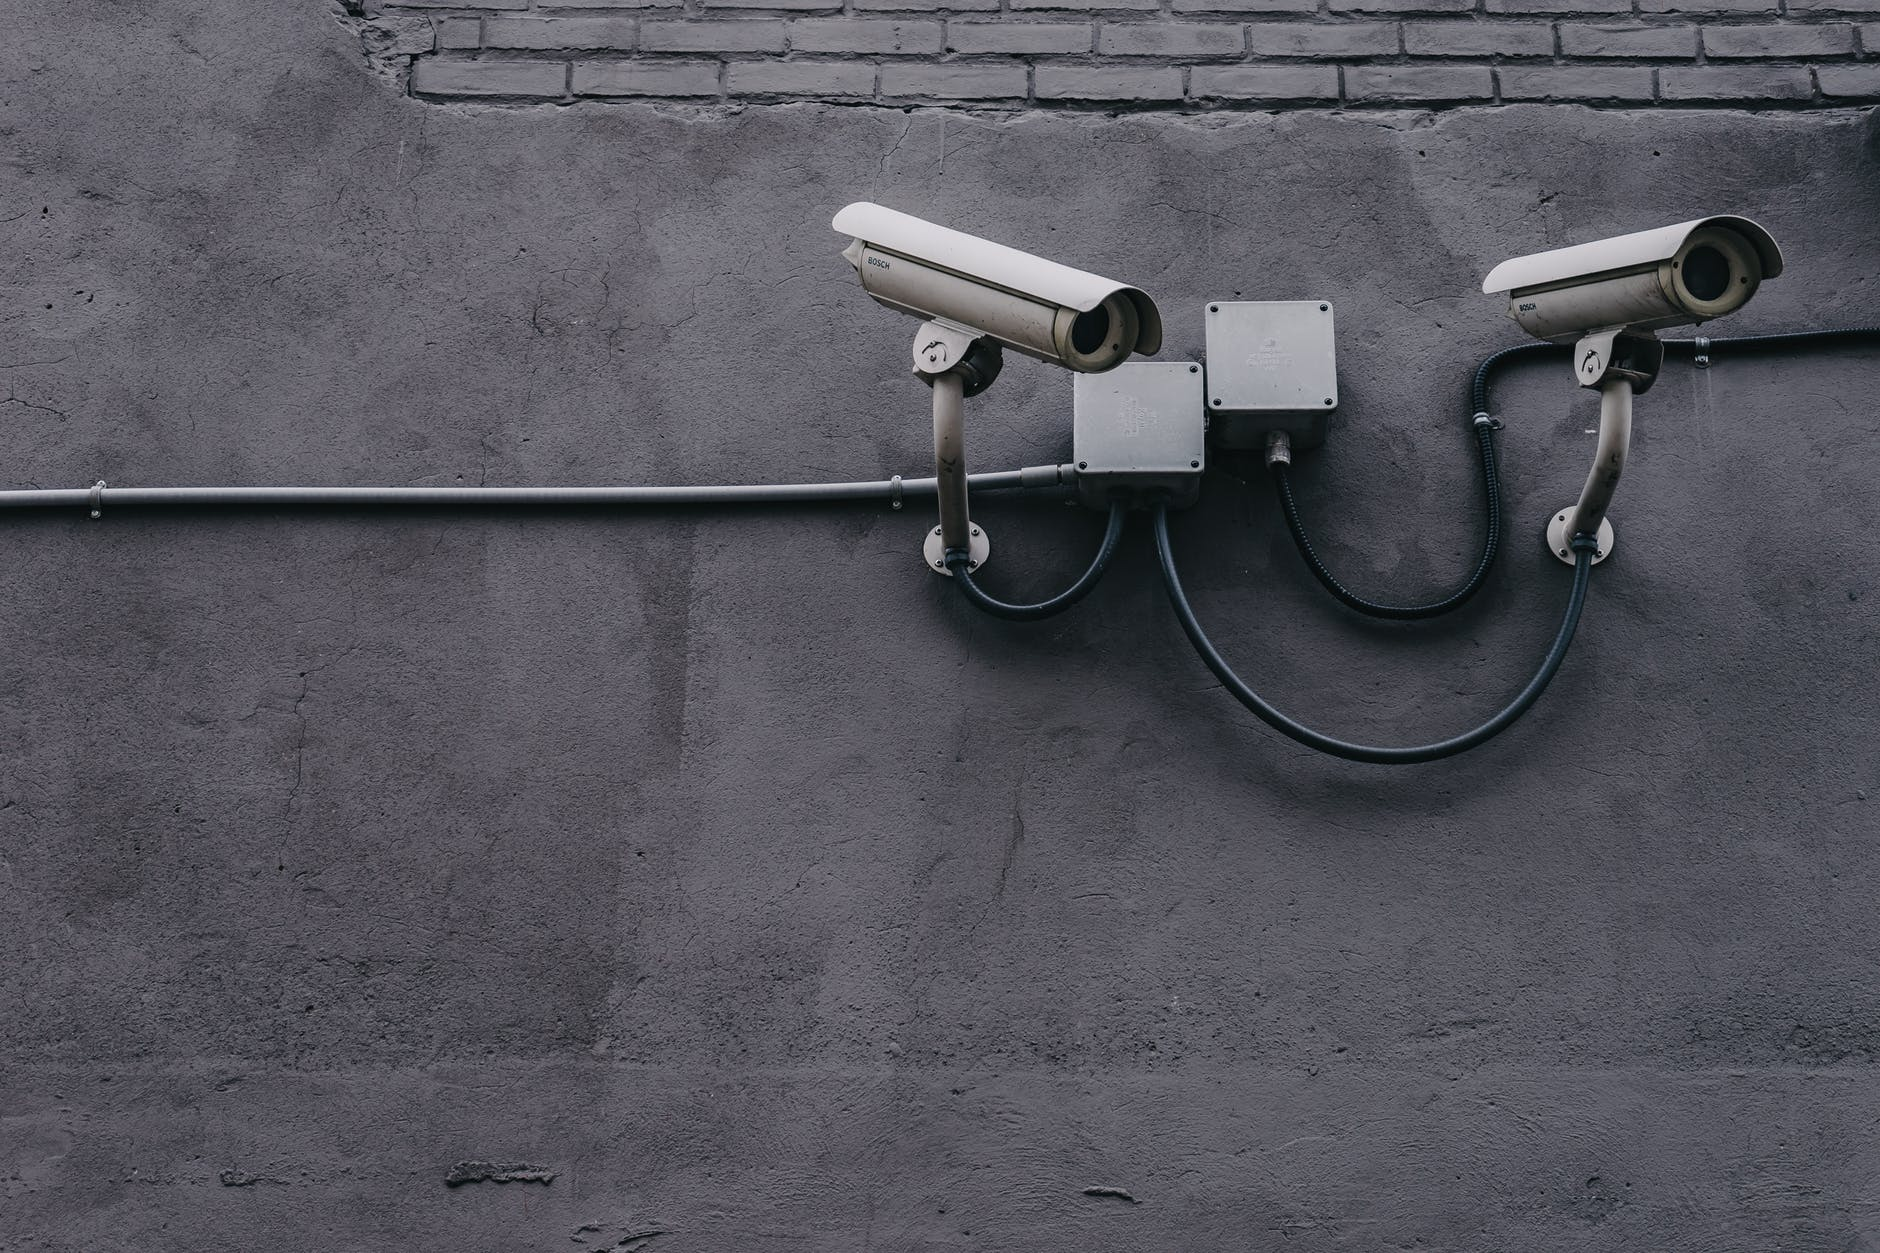 security cameras illustrating a hacker breach in marketing for financial services